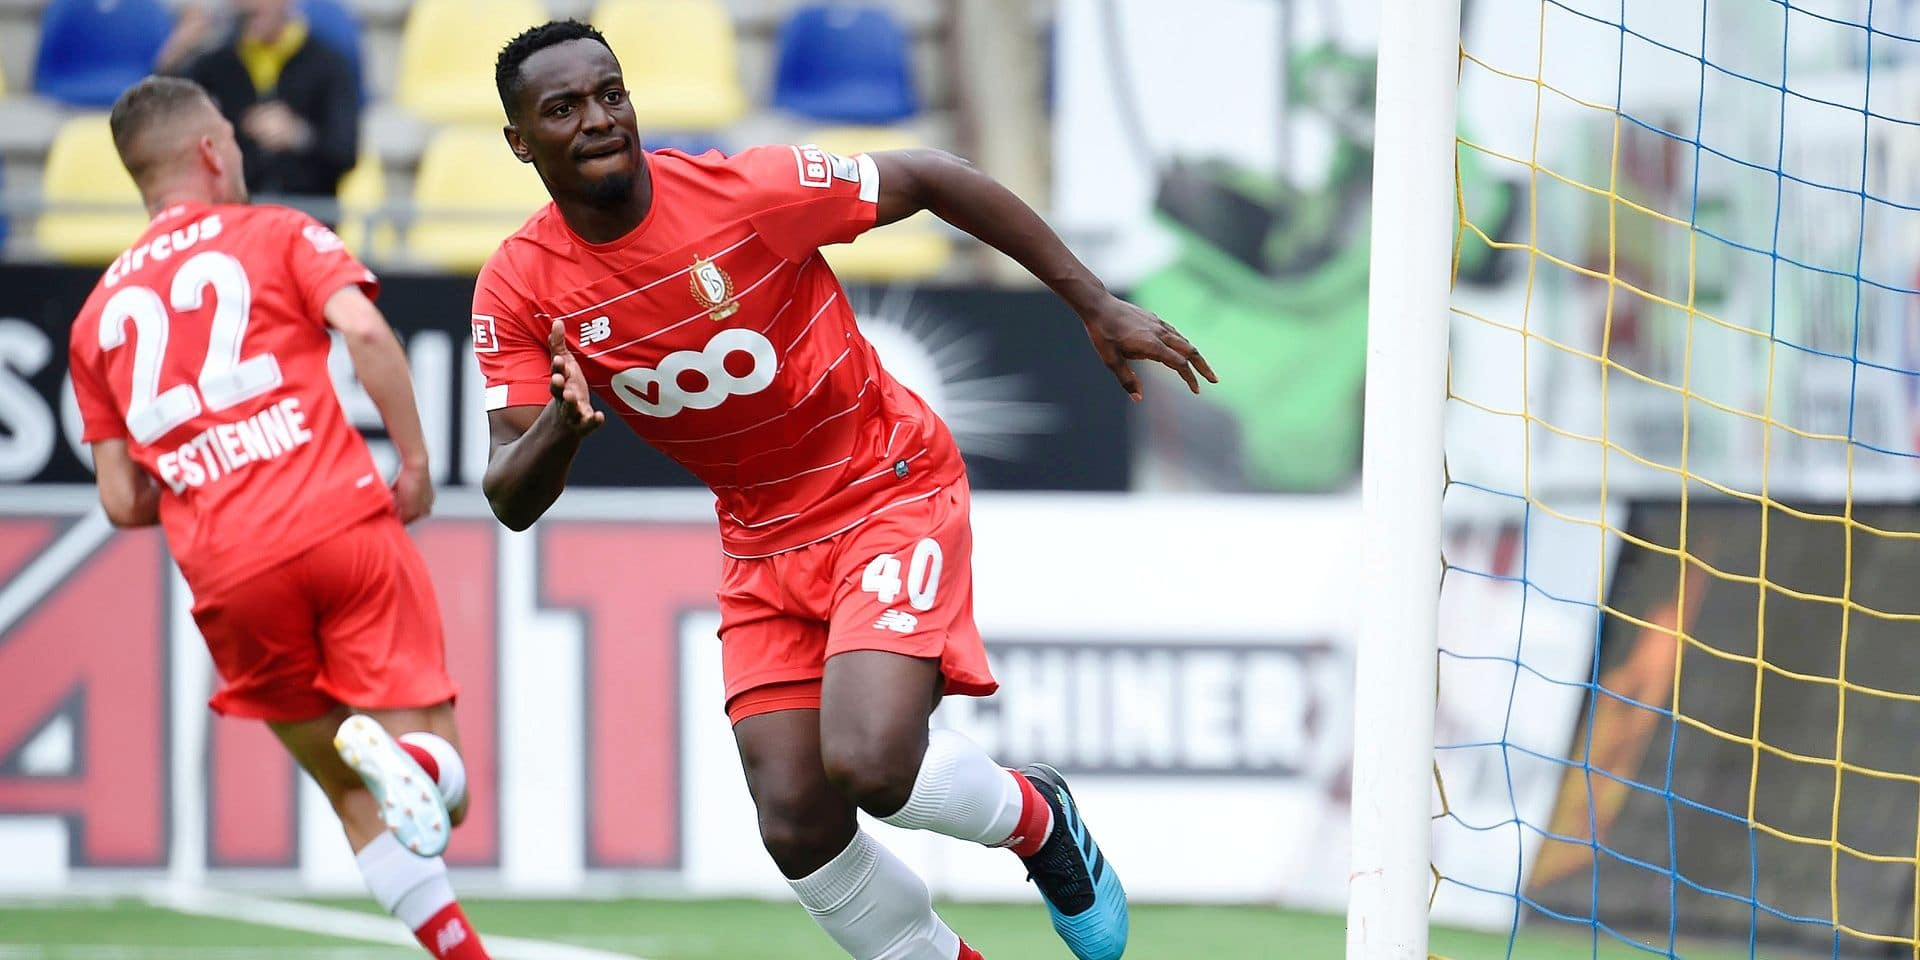 SINT-TRUIDEN, BELGIUM - AUGUST 11 : Paul-Jose Mpoku midfielder of Standard Liege pictured during the Jupiler Pro League match between Sint Truinden and Standard de Liege on August 11, 2019 in Sint-Truiden, Belgium, 11/08/2019 ( Photo by Philippe Crochet / Photonews